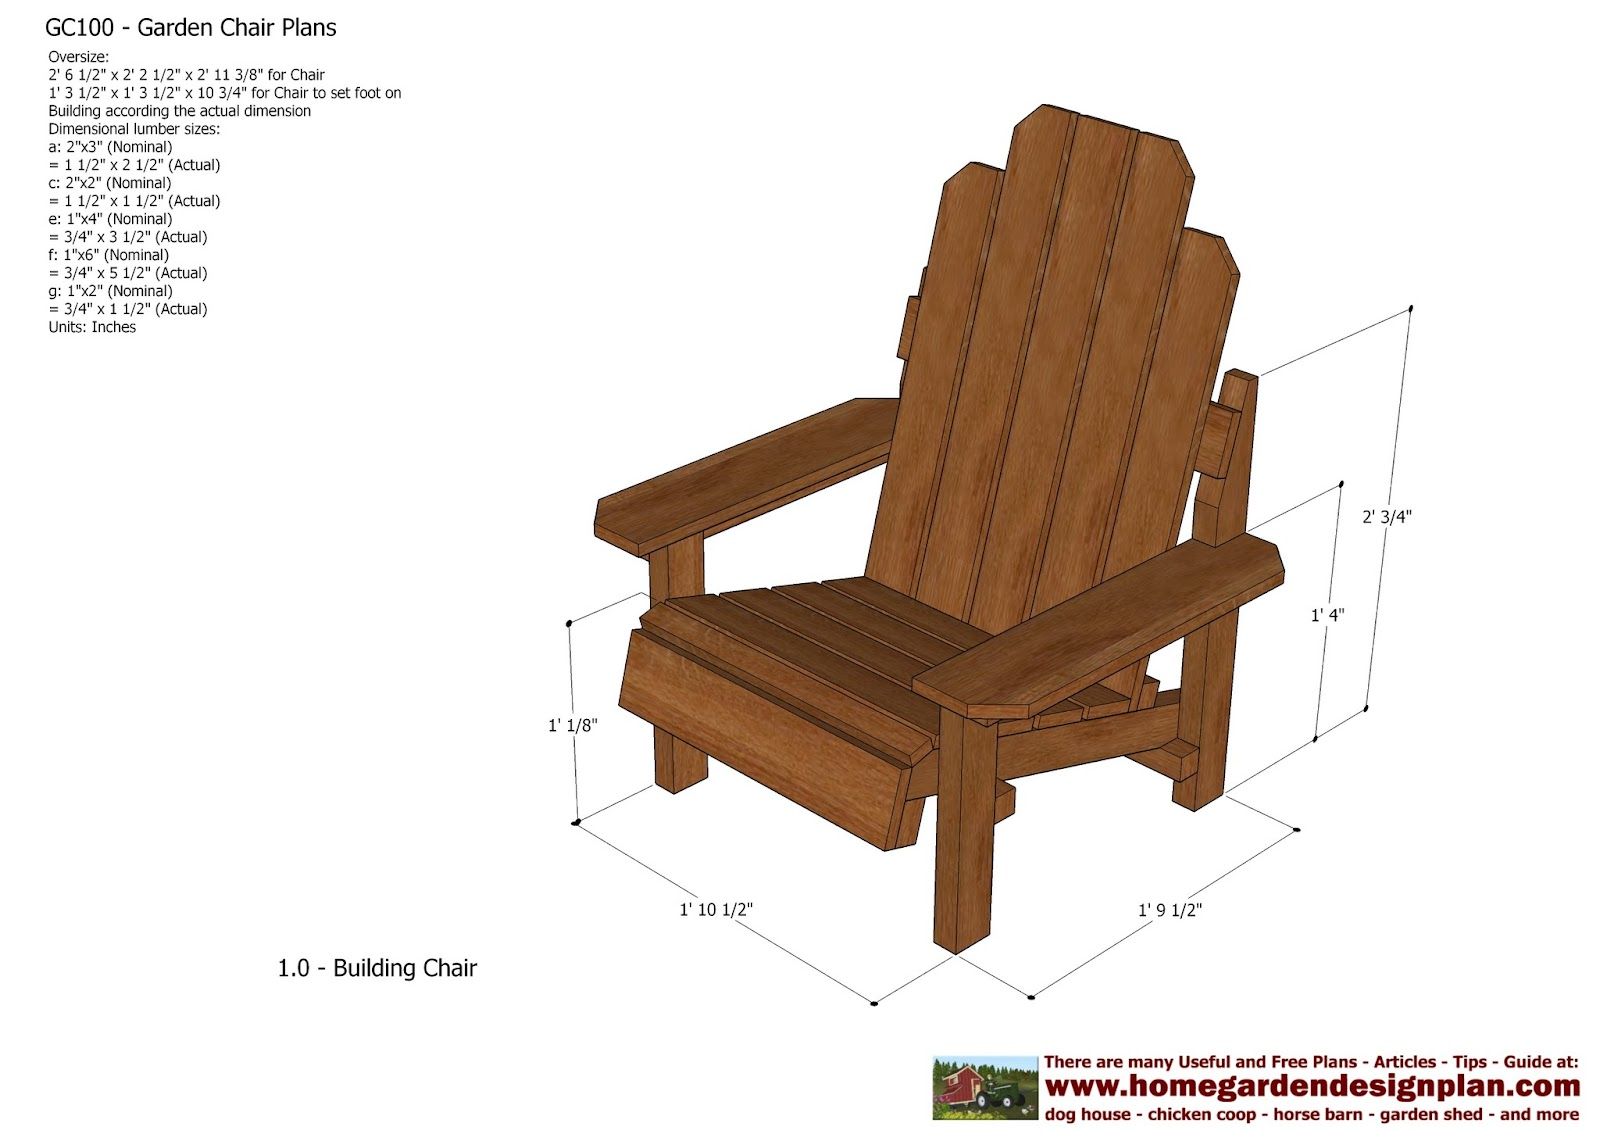 Outdoor Wood Chair Plans ~ Small garden sheds for sale brisbane chair plans